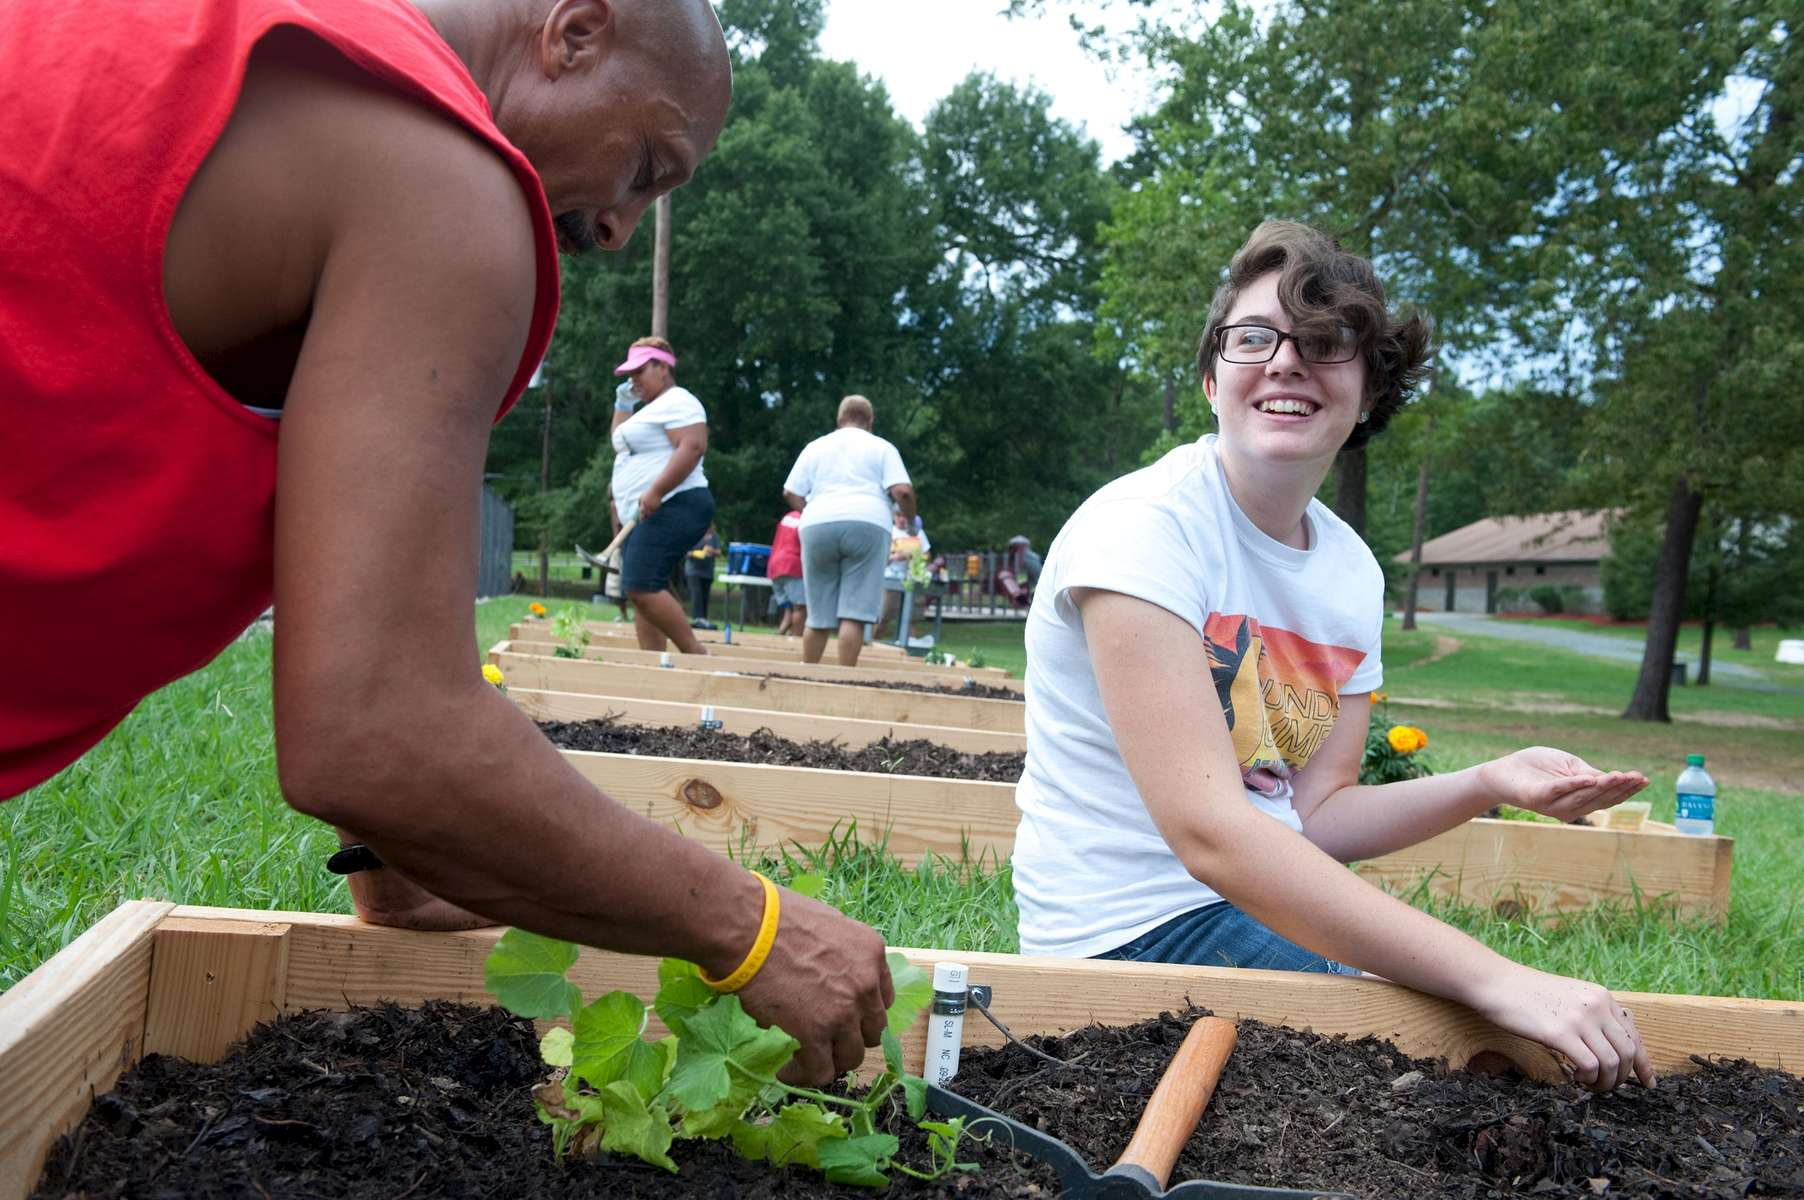 Elon student Lauren Clapp plants a community garden with community volunteers at the Mayo Bigelow Center at North Park in Burlington. Lauren created the garden as part of her research on food justice.